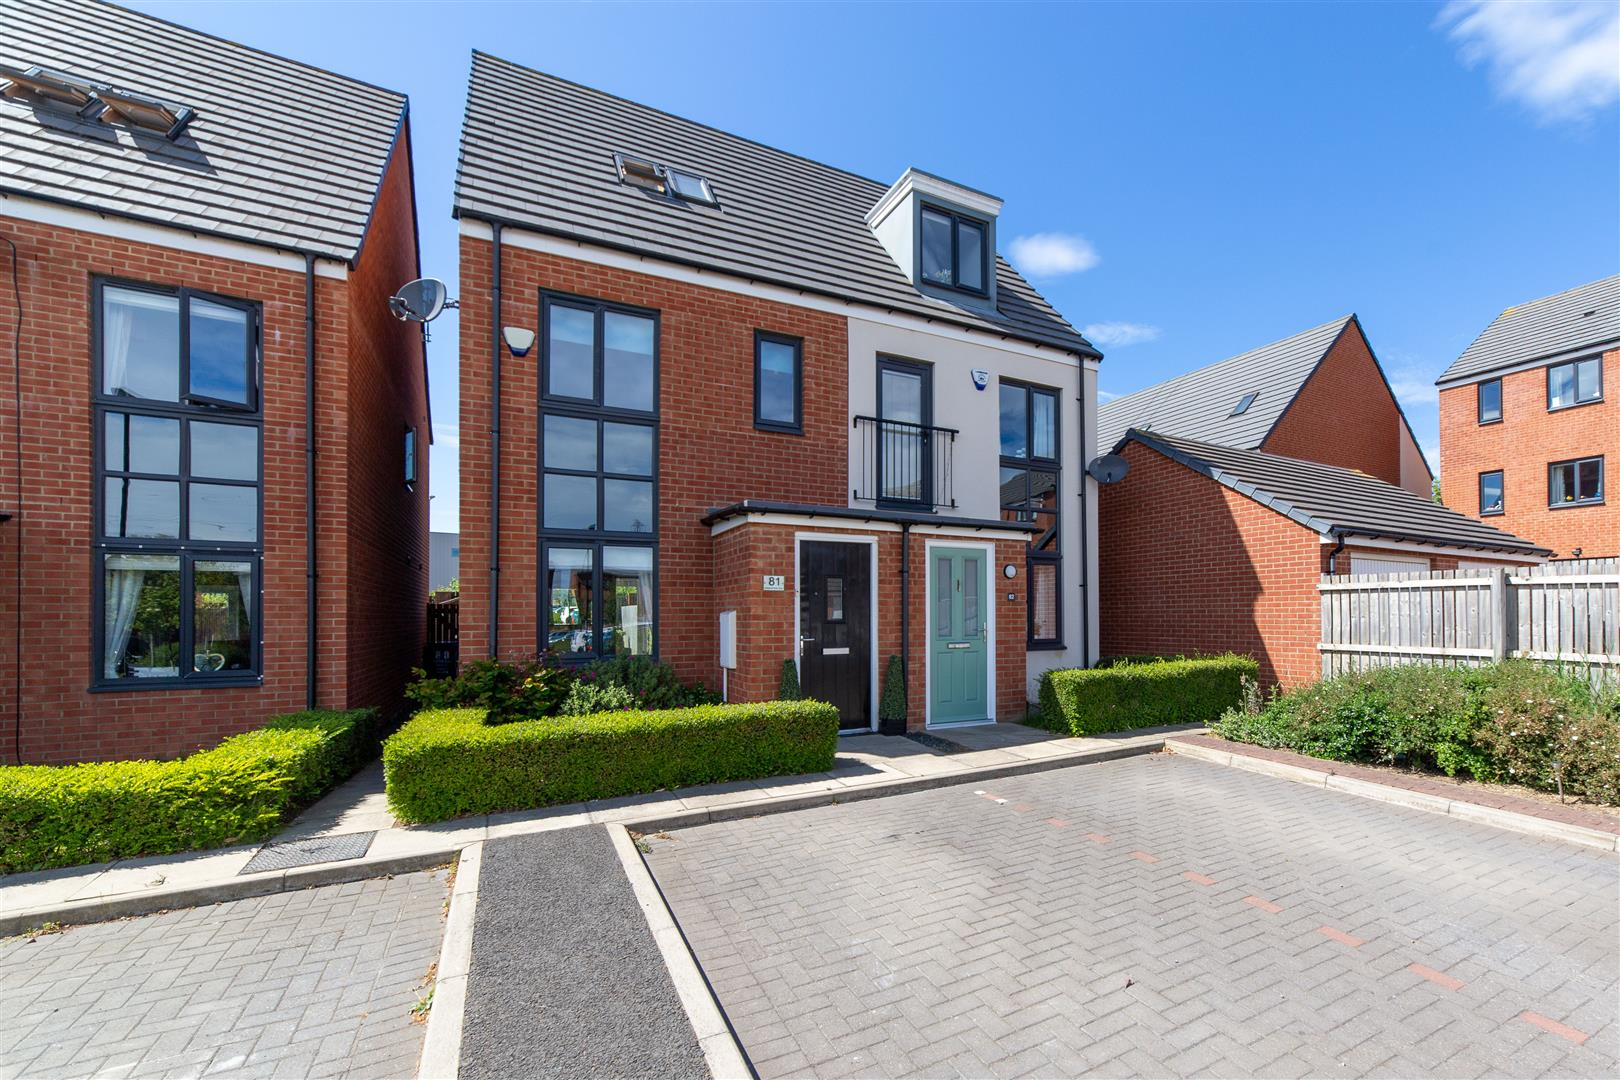 3 bed end of terrace house to rent in Elmwood Park Court, Great Park, NE13